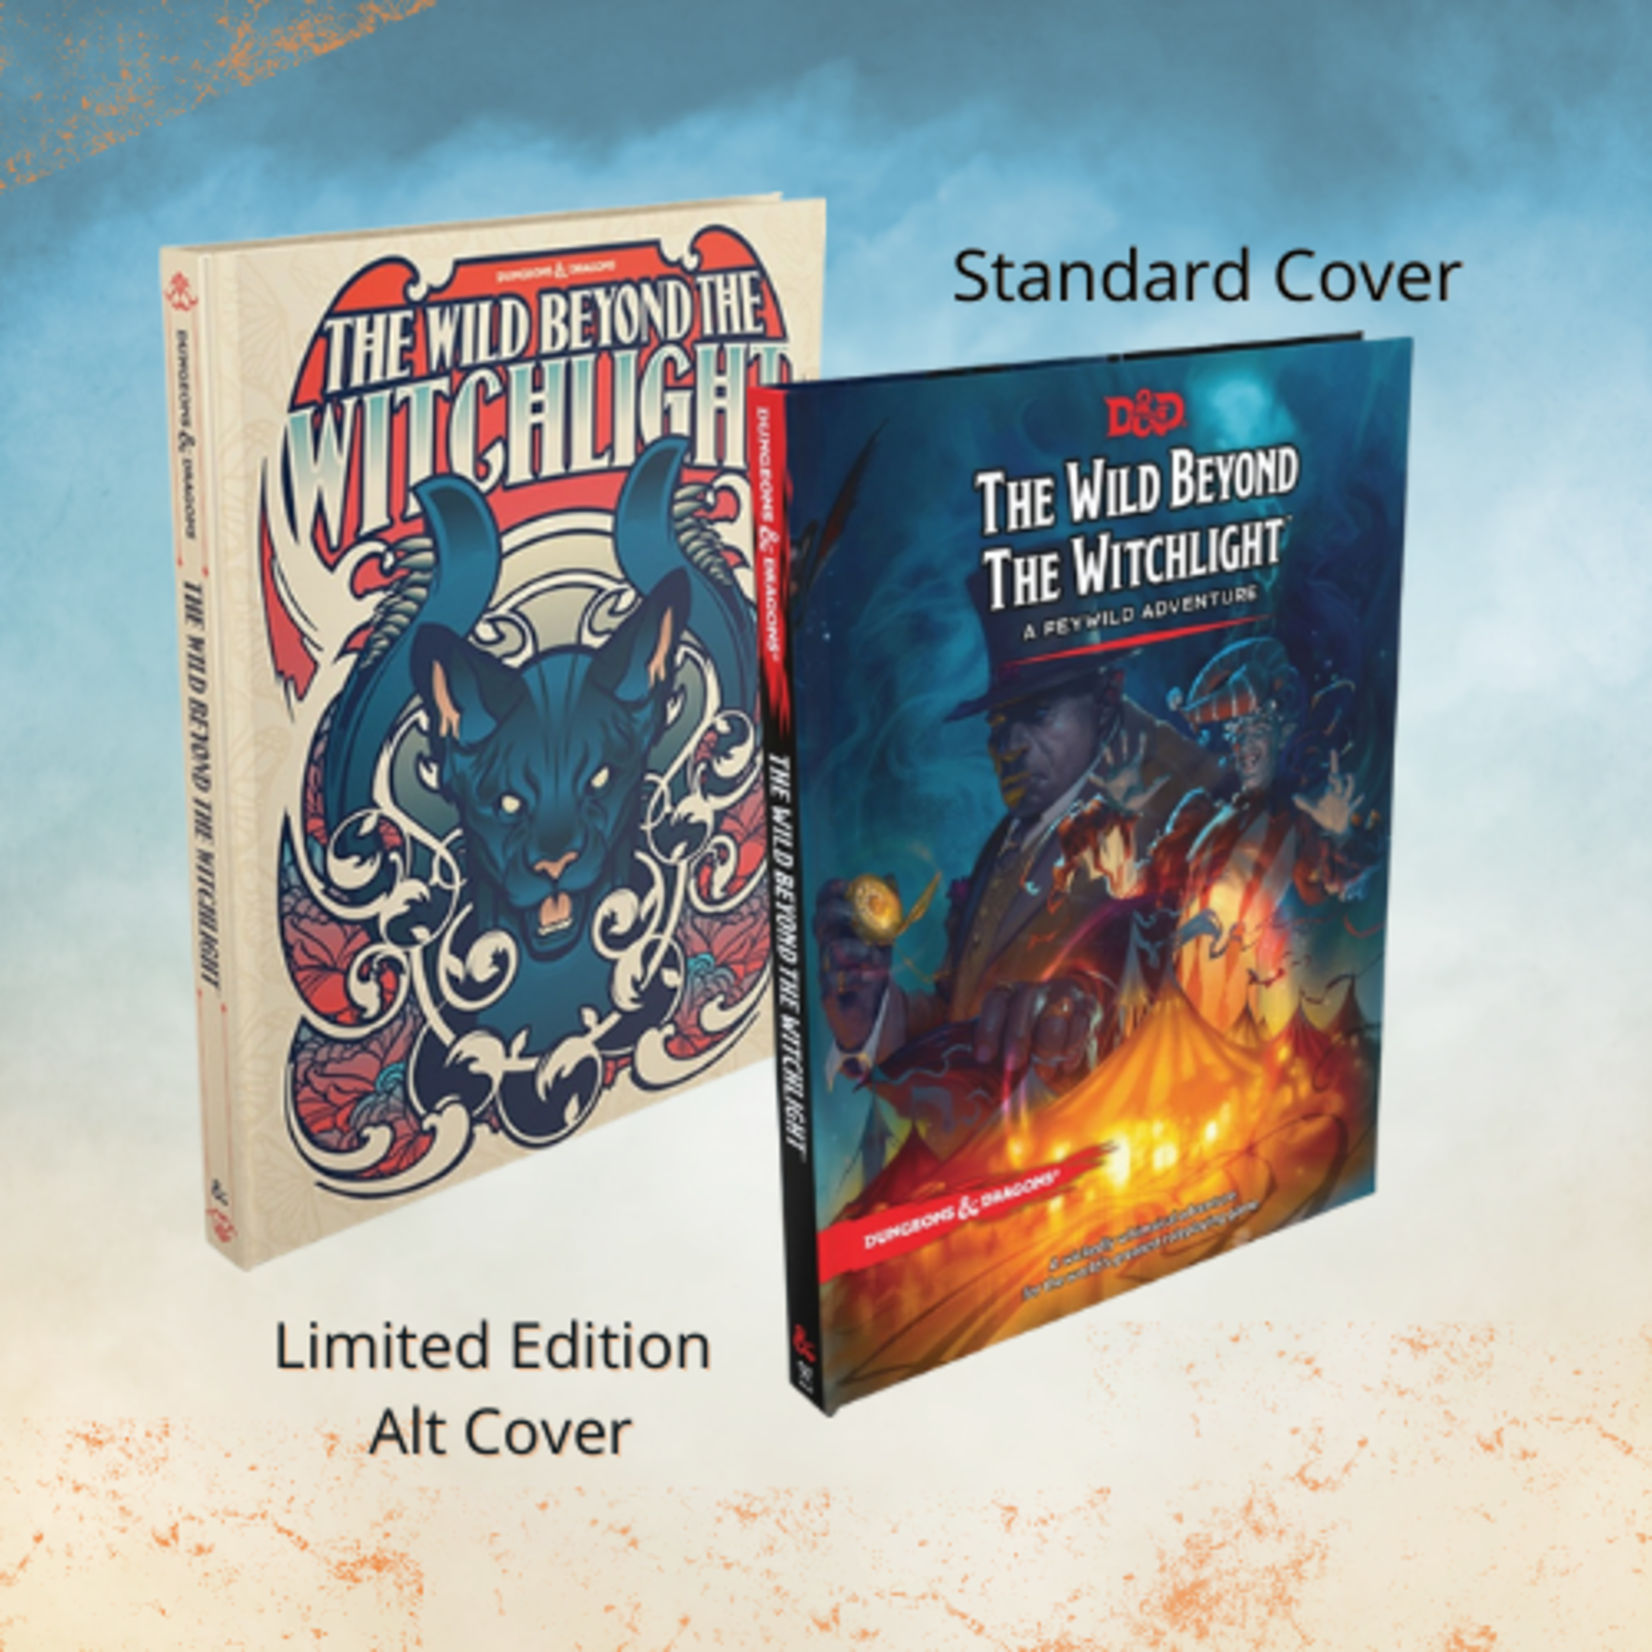 PRE-ORDER Dungeons and Dragons RPG: The Wild Beyond the Witchlight - A Feywild Adventure